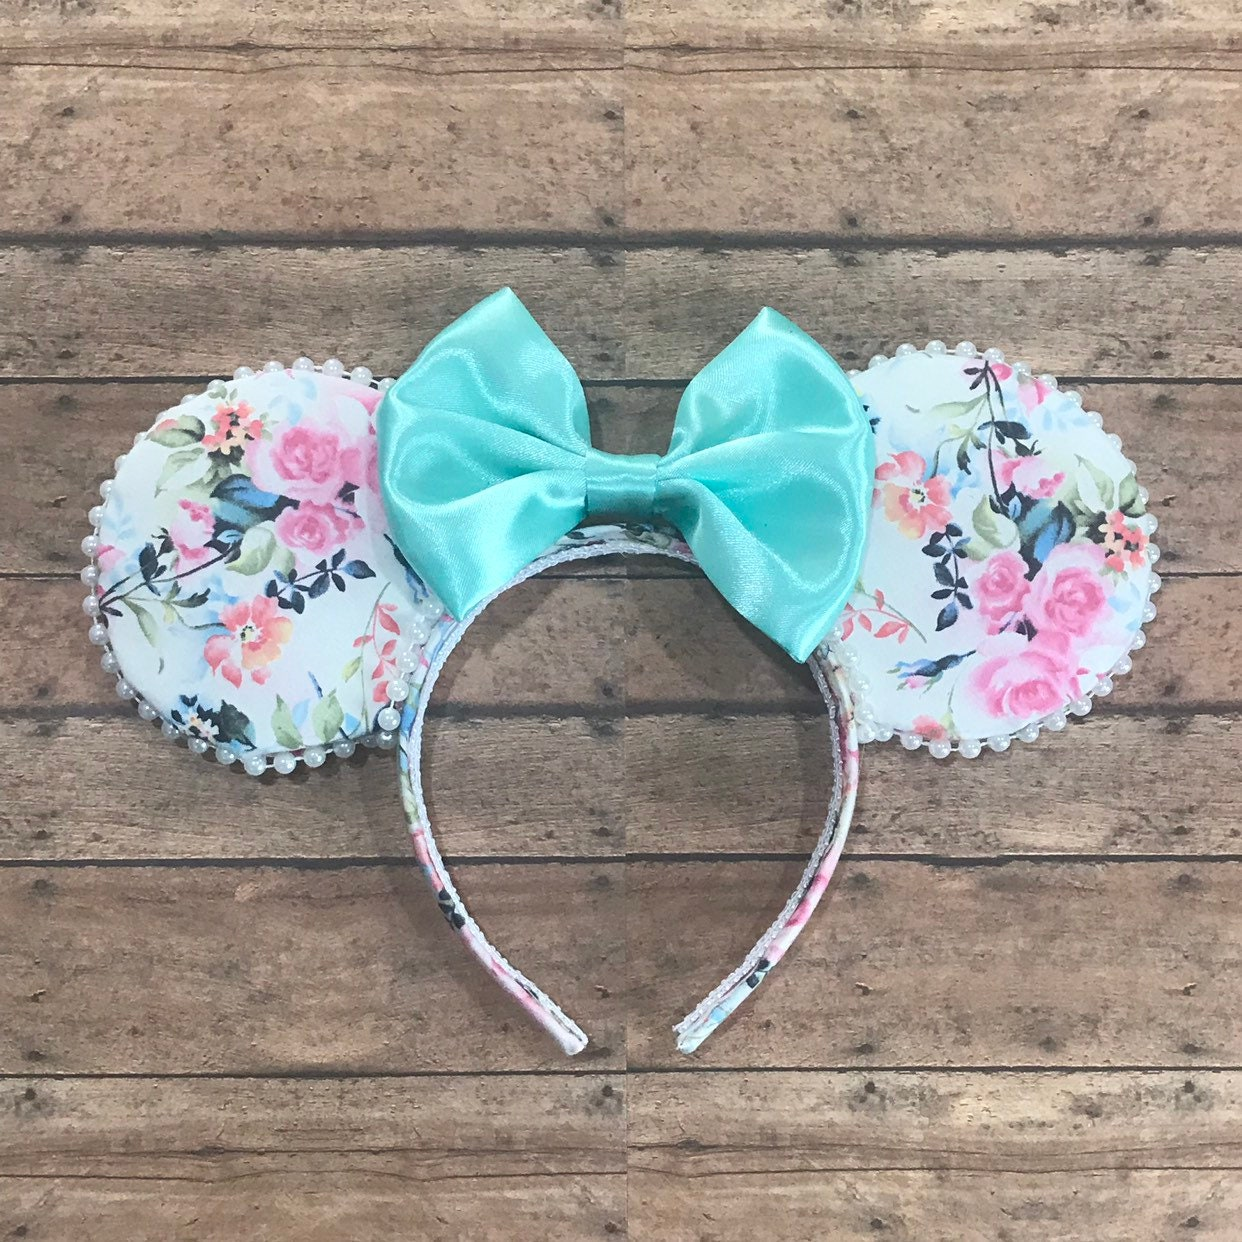 epcot mickey ears. flower and garden. flower and garden minnie ears. mickey  floral ears floral minnie ears. spring minnie ears. summer